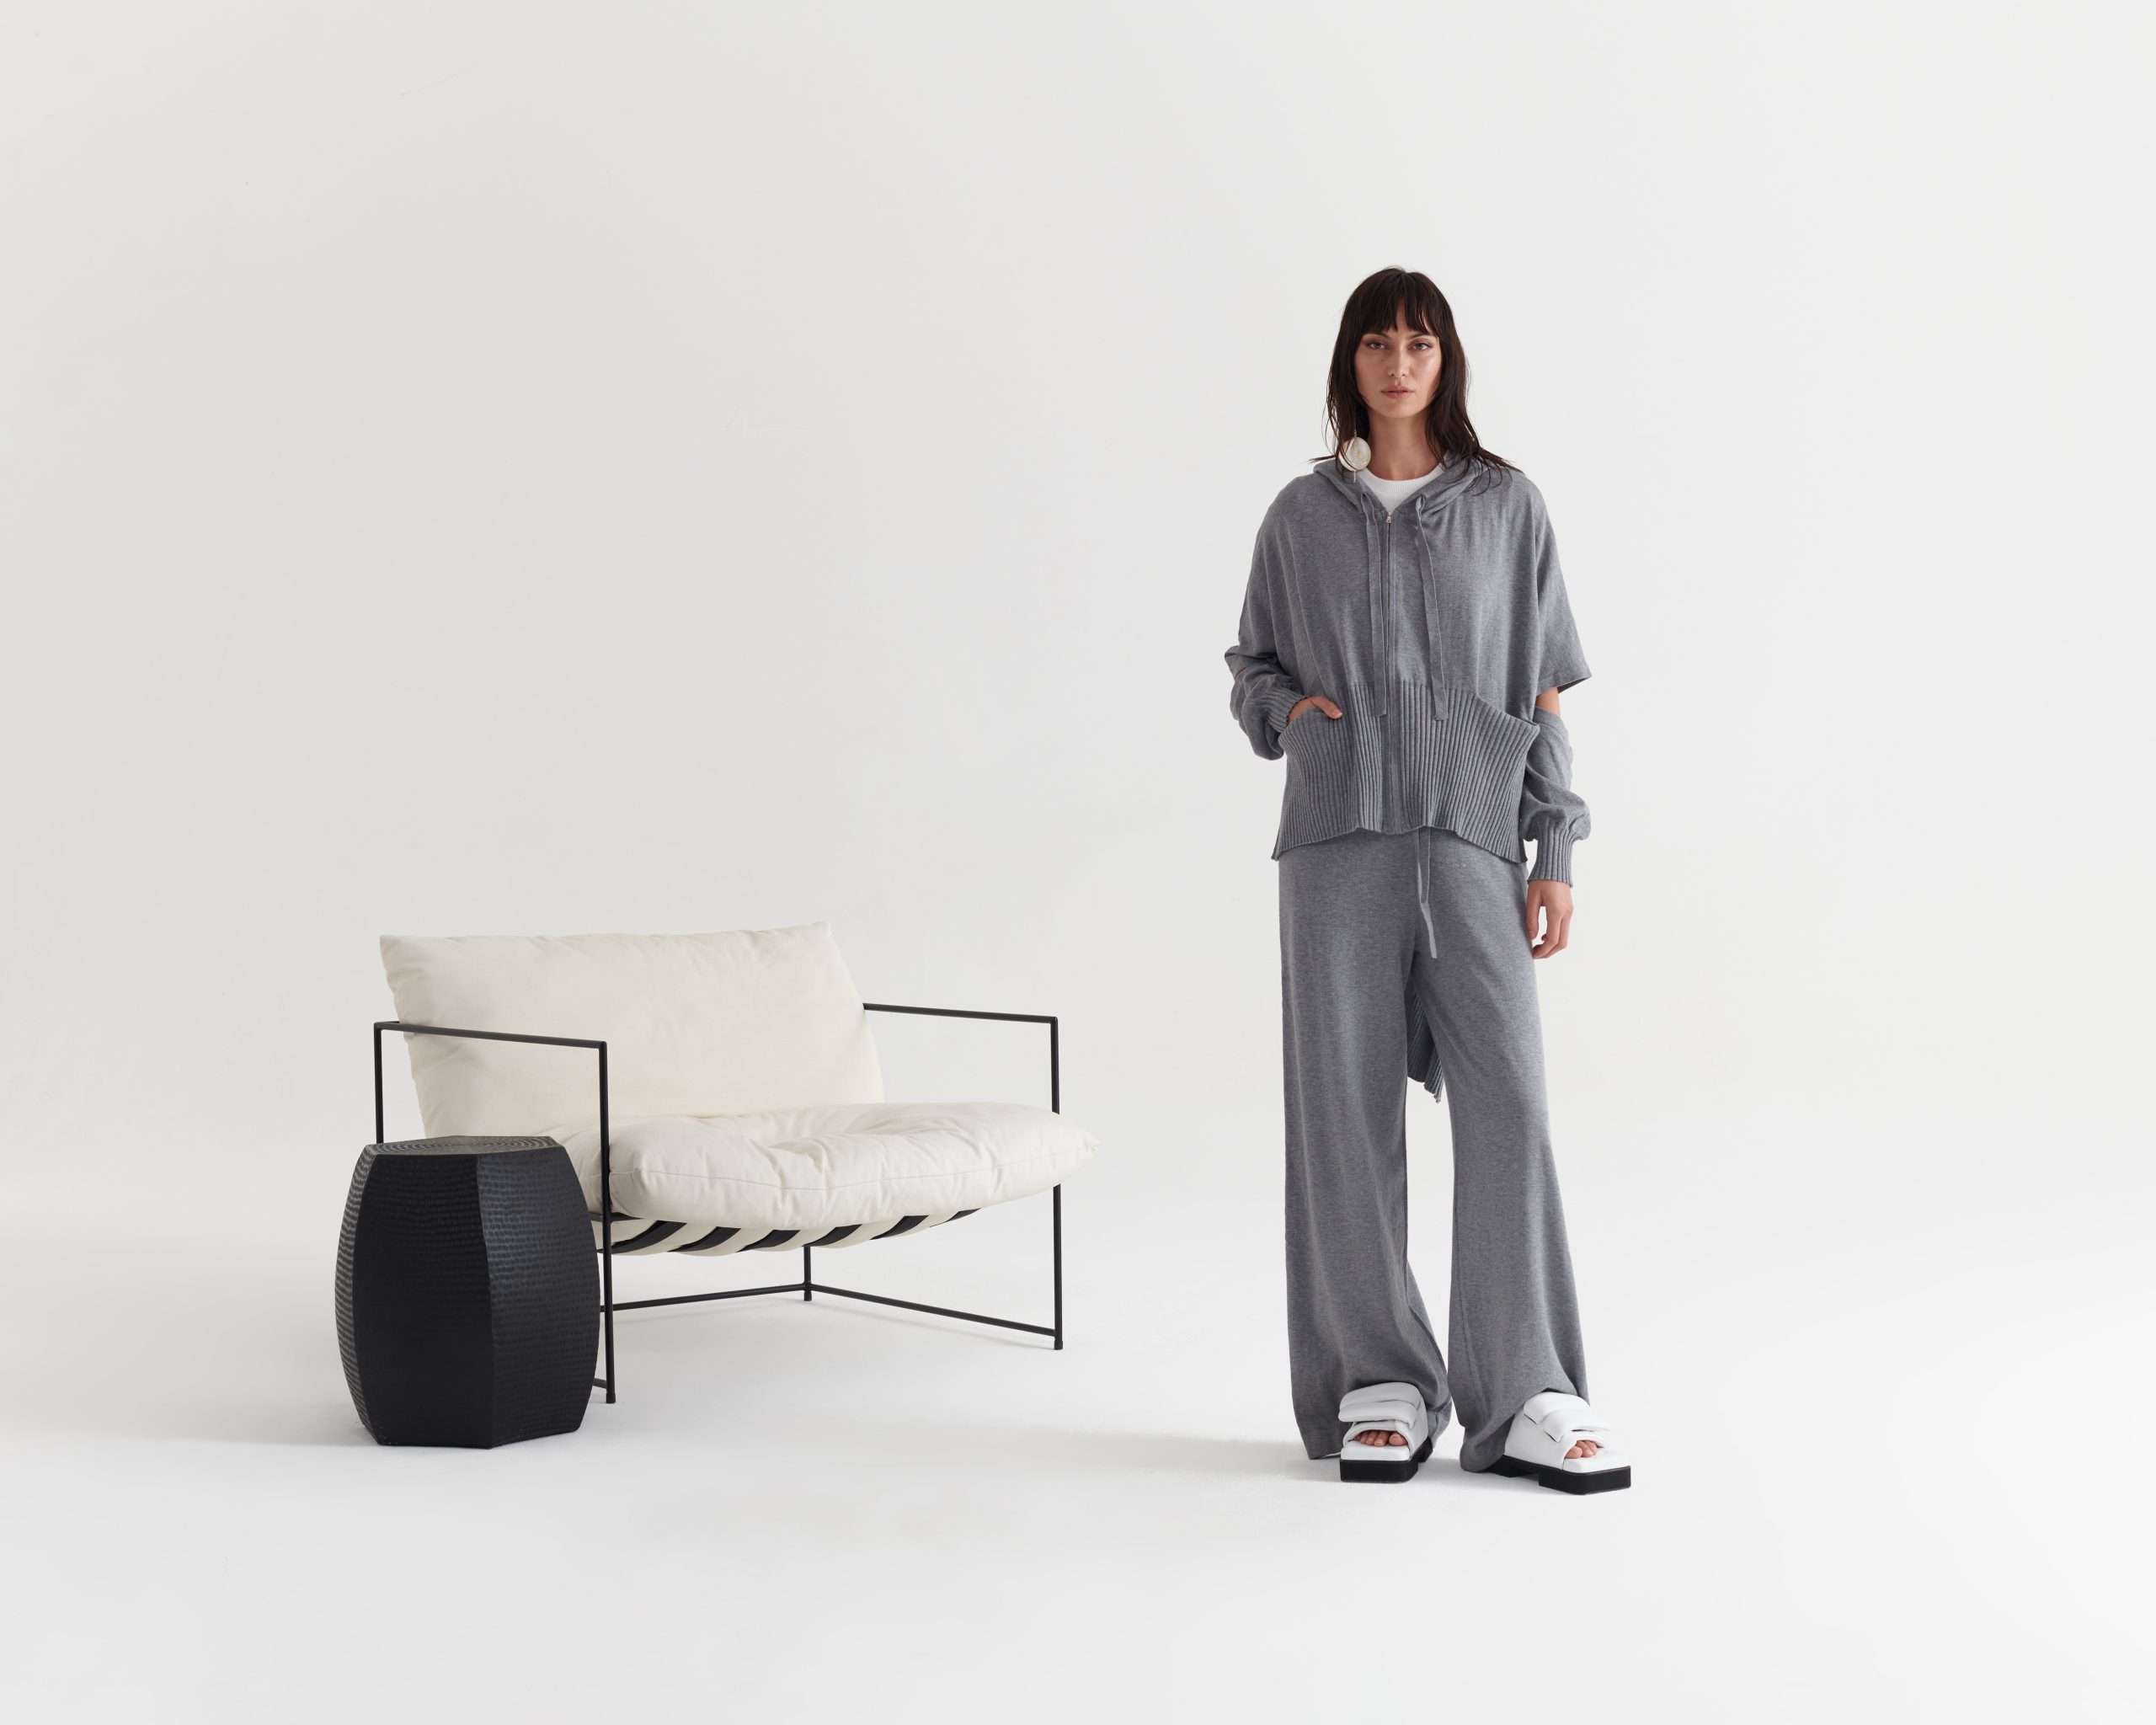 Knitted-Junction-Hoodie-Pumice Grey_Contentment-Pant-Pumice Grey_Taylor_Recline